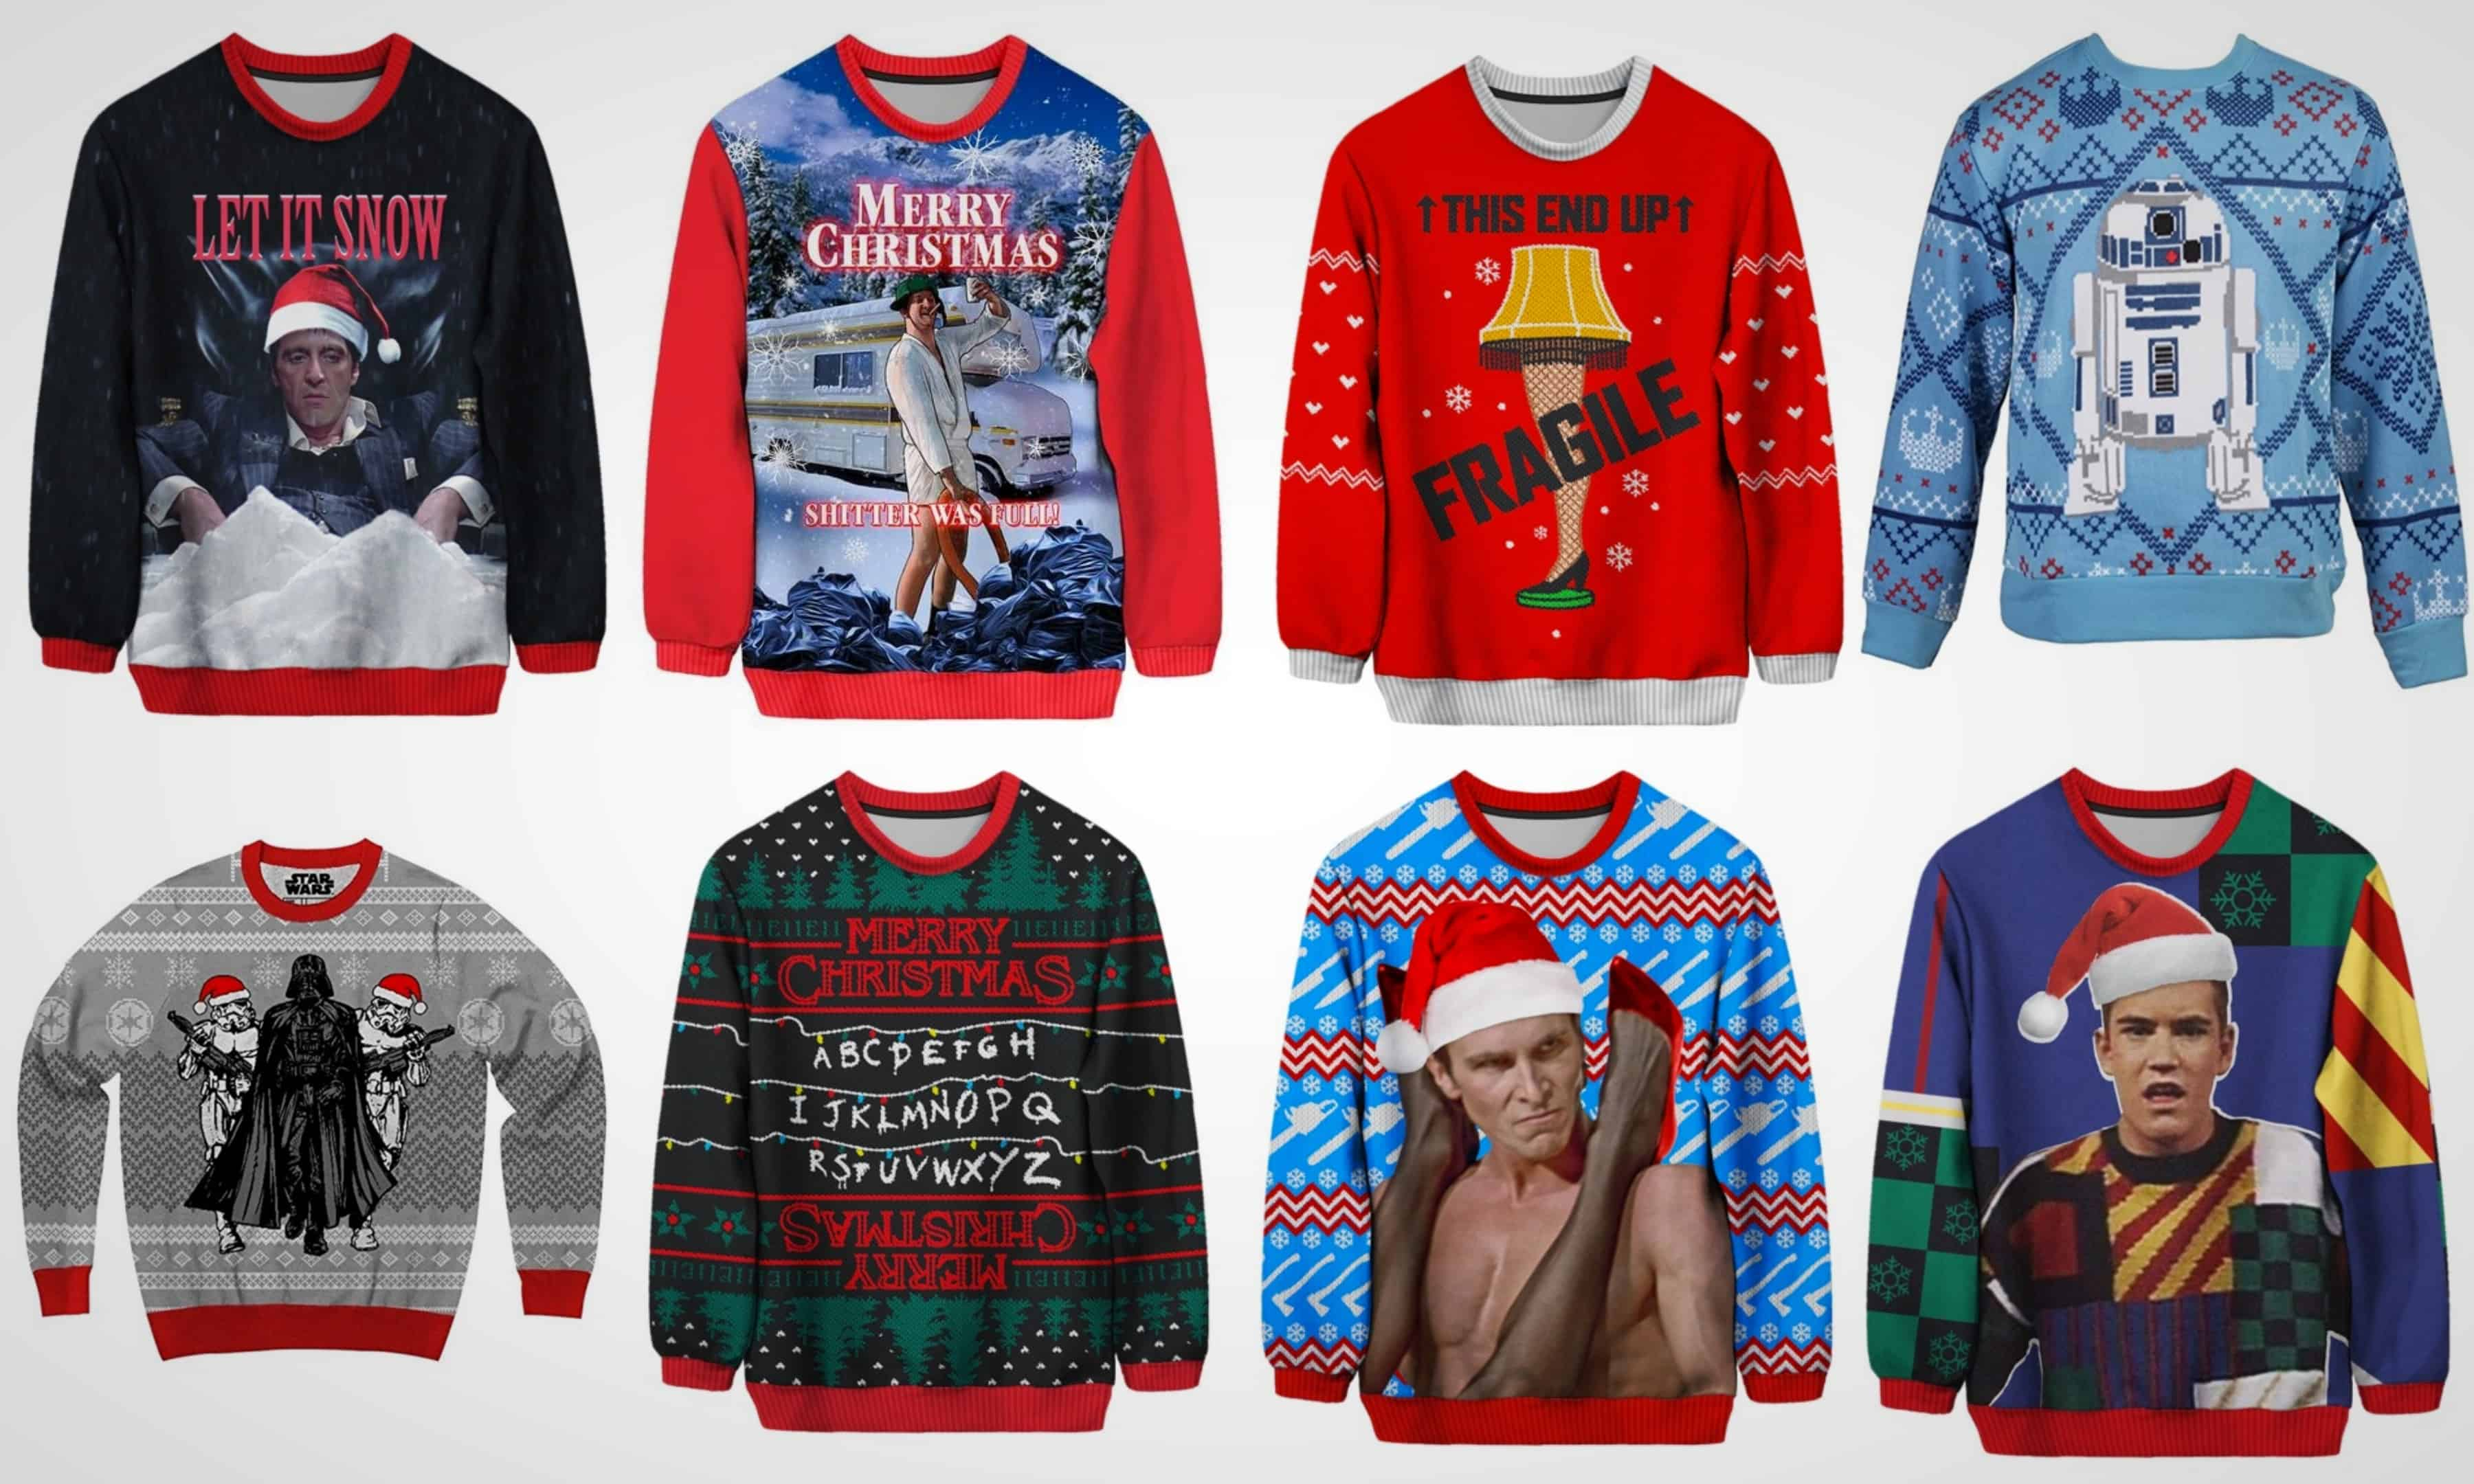 11 Ugly Christmas Sweaters For People Who Love TV And Movies